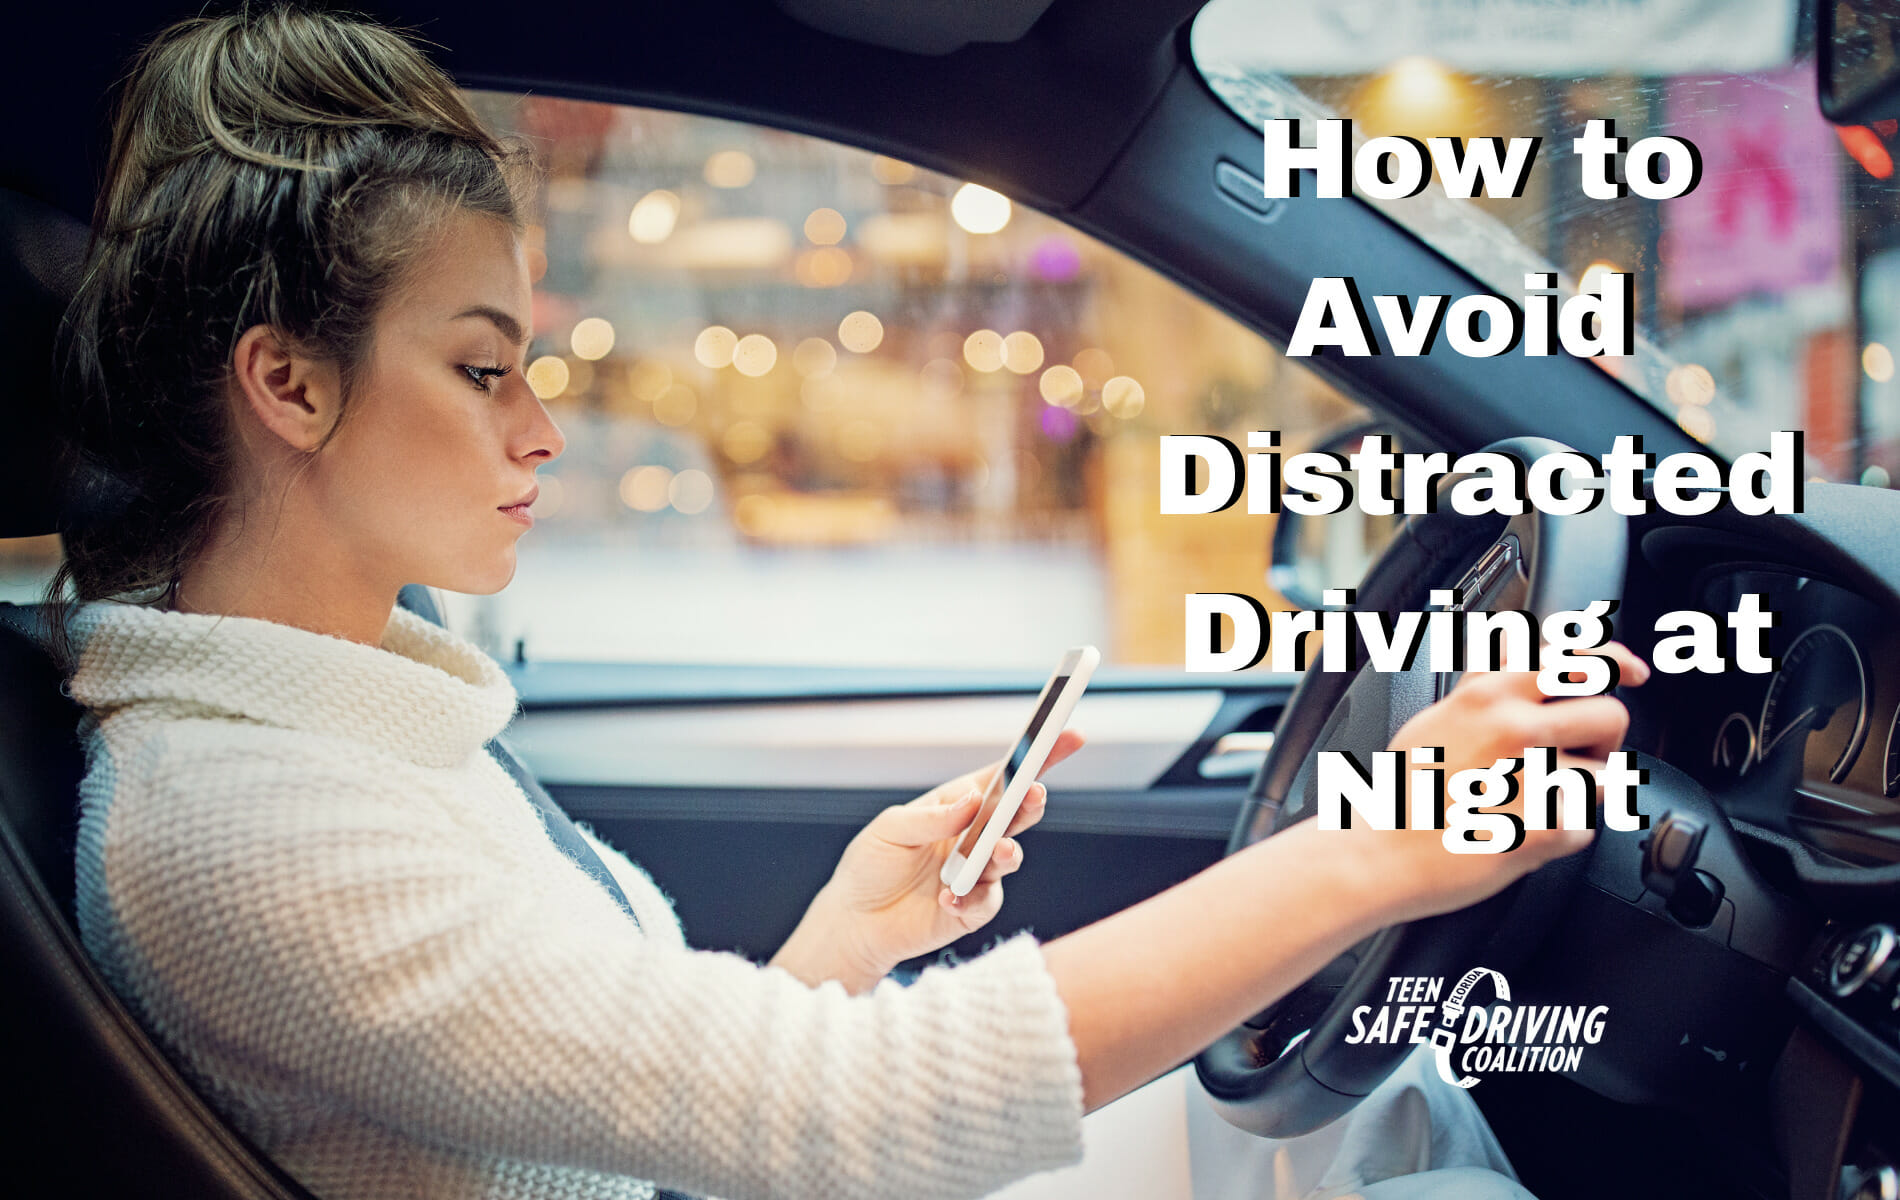 How to Avoid Distracted Driving at Night